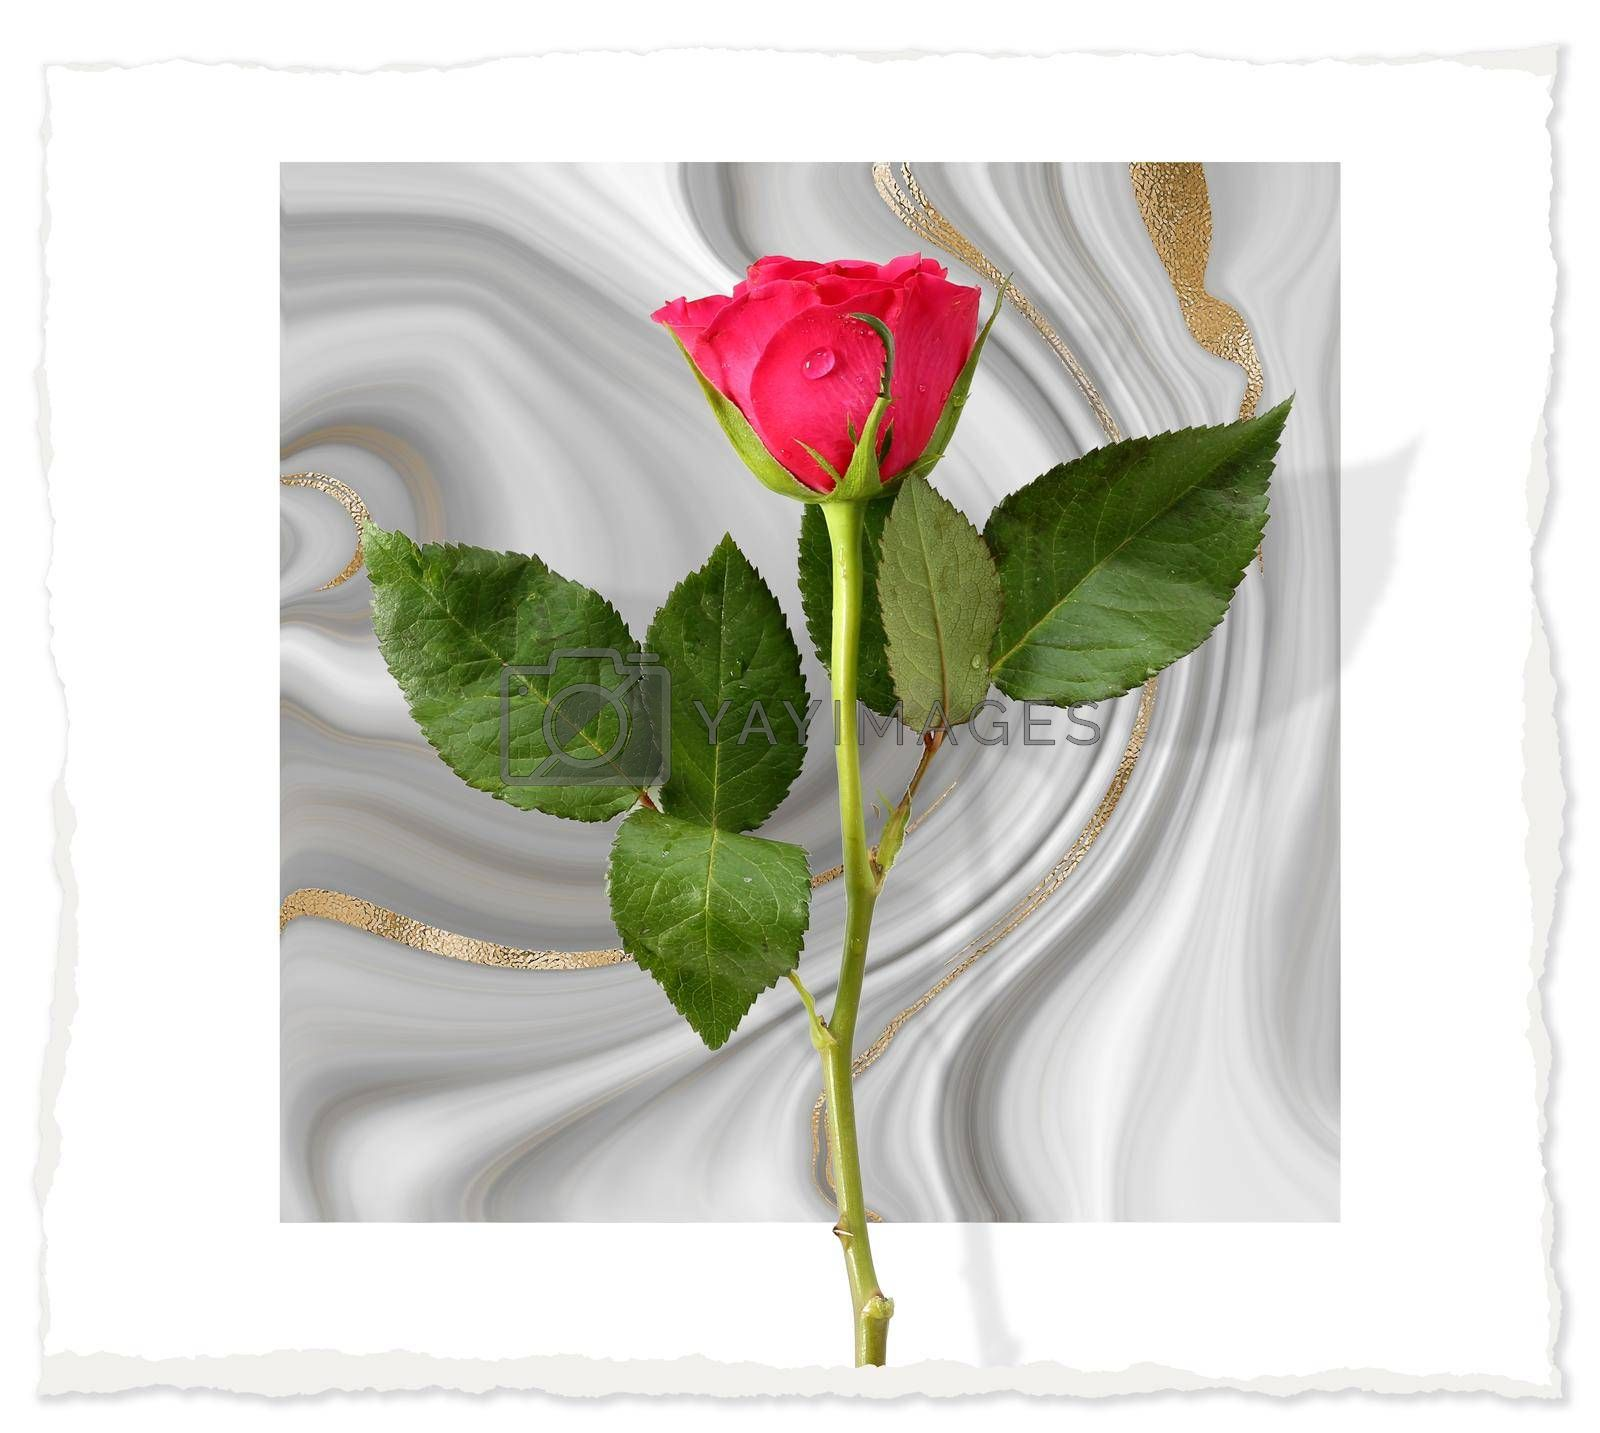 Red rose flower on pastel grey white marble background. Flowers for holiday cards, mother's day, 8 March, birthday, wedding, Valentine's Day. Beautiful flower arrangement. Top view, flat lay